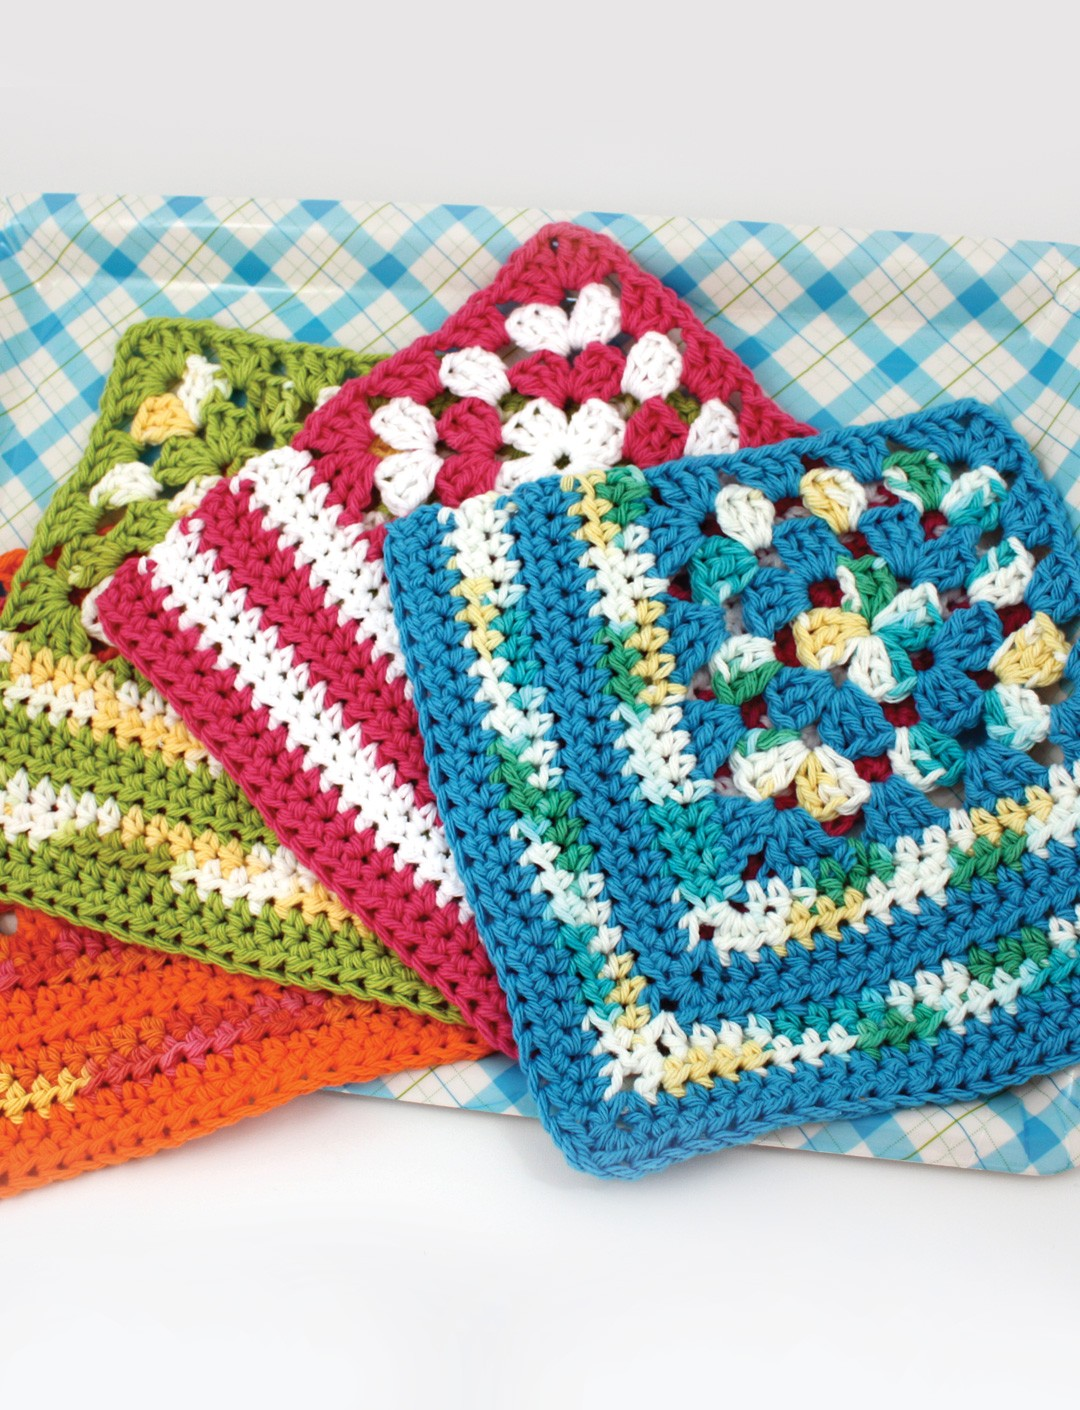 Lily Granny Corner Dishcloth, Crochet Pattern Yarnspirations